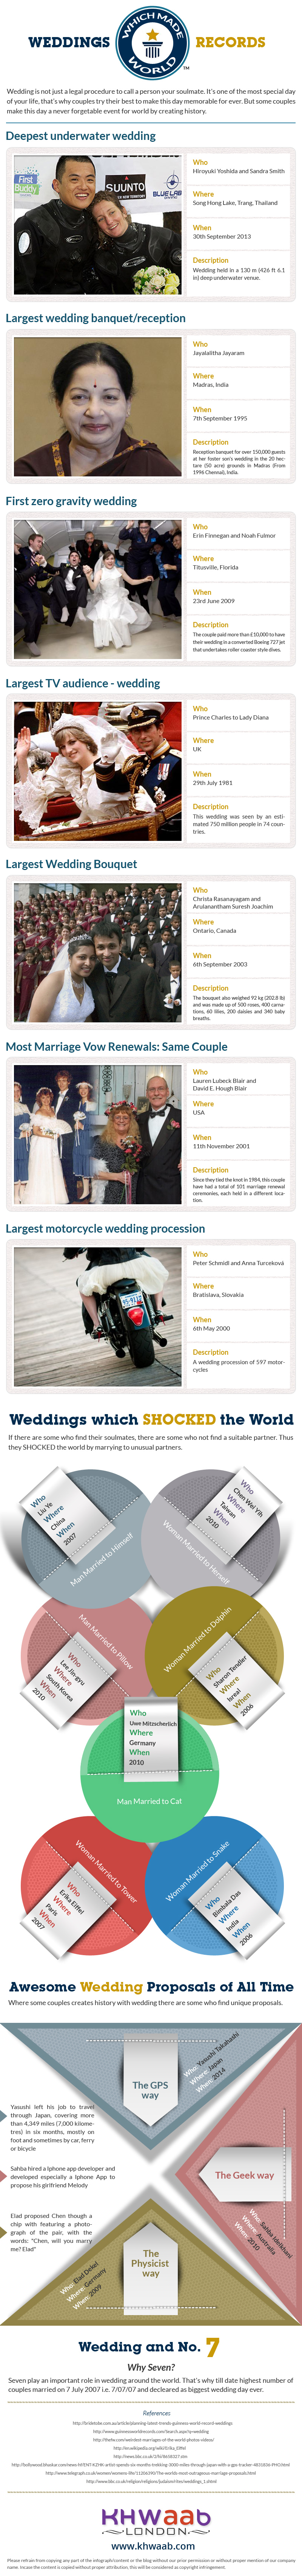 weddings-which-made-world-records